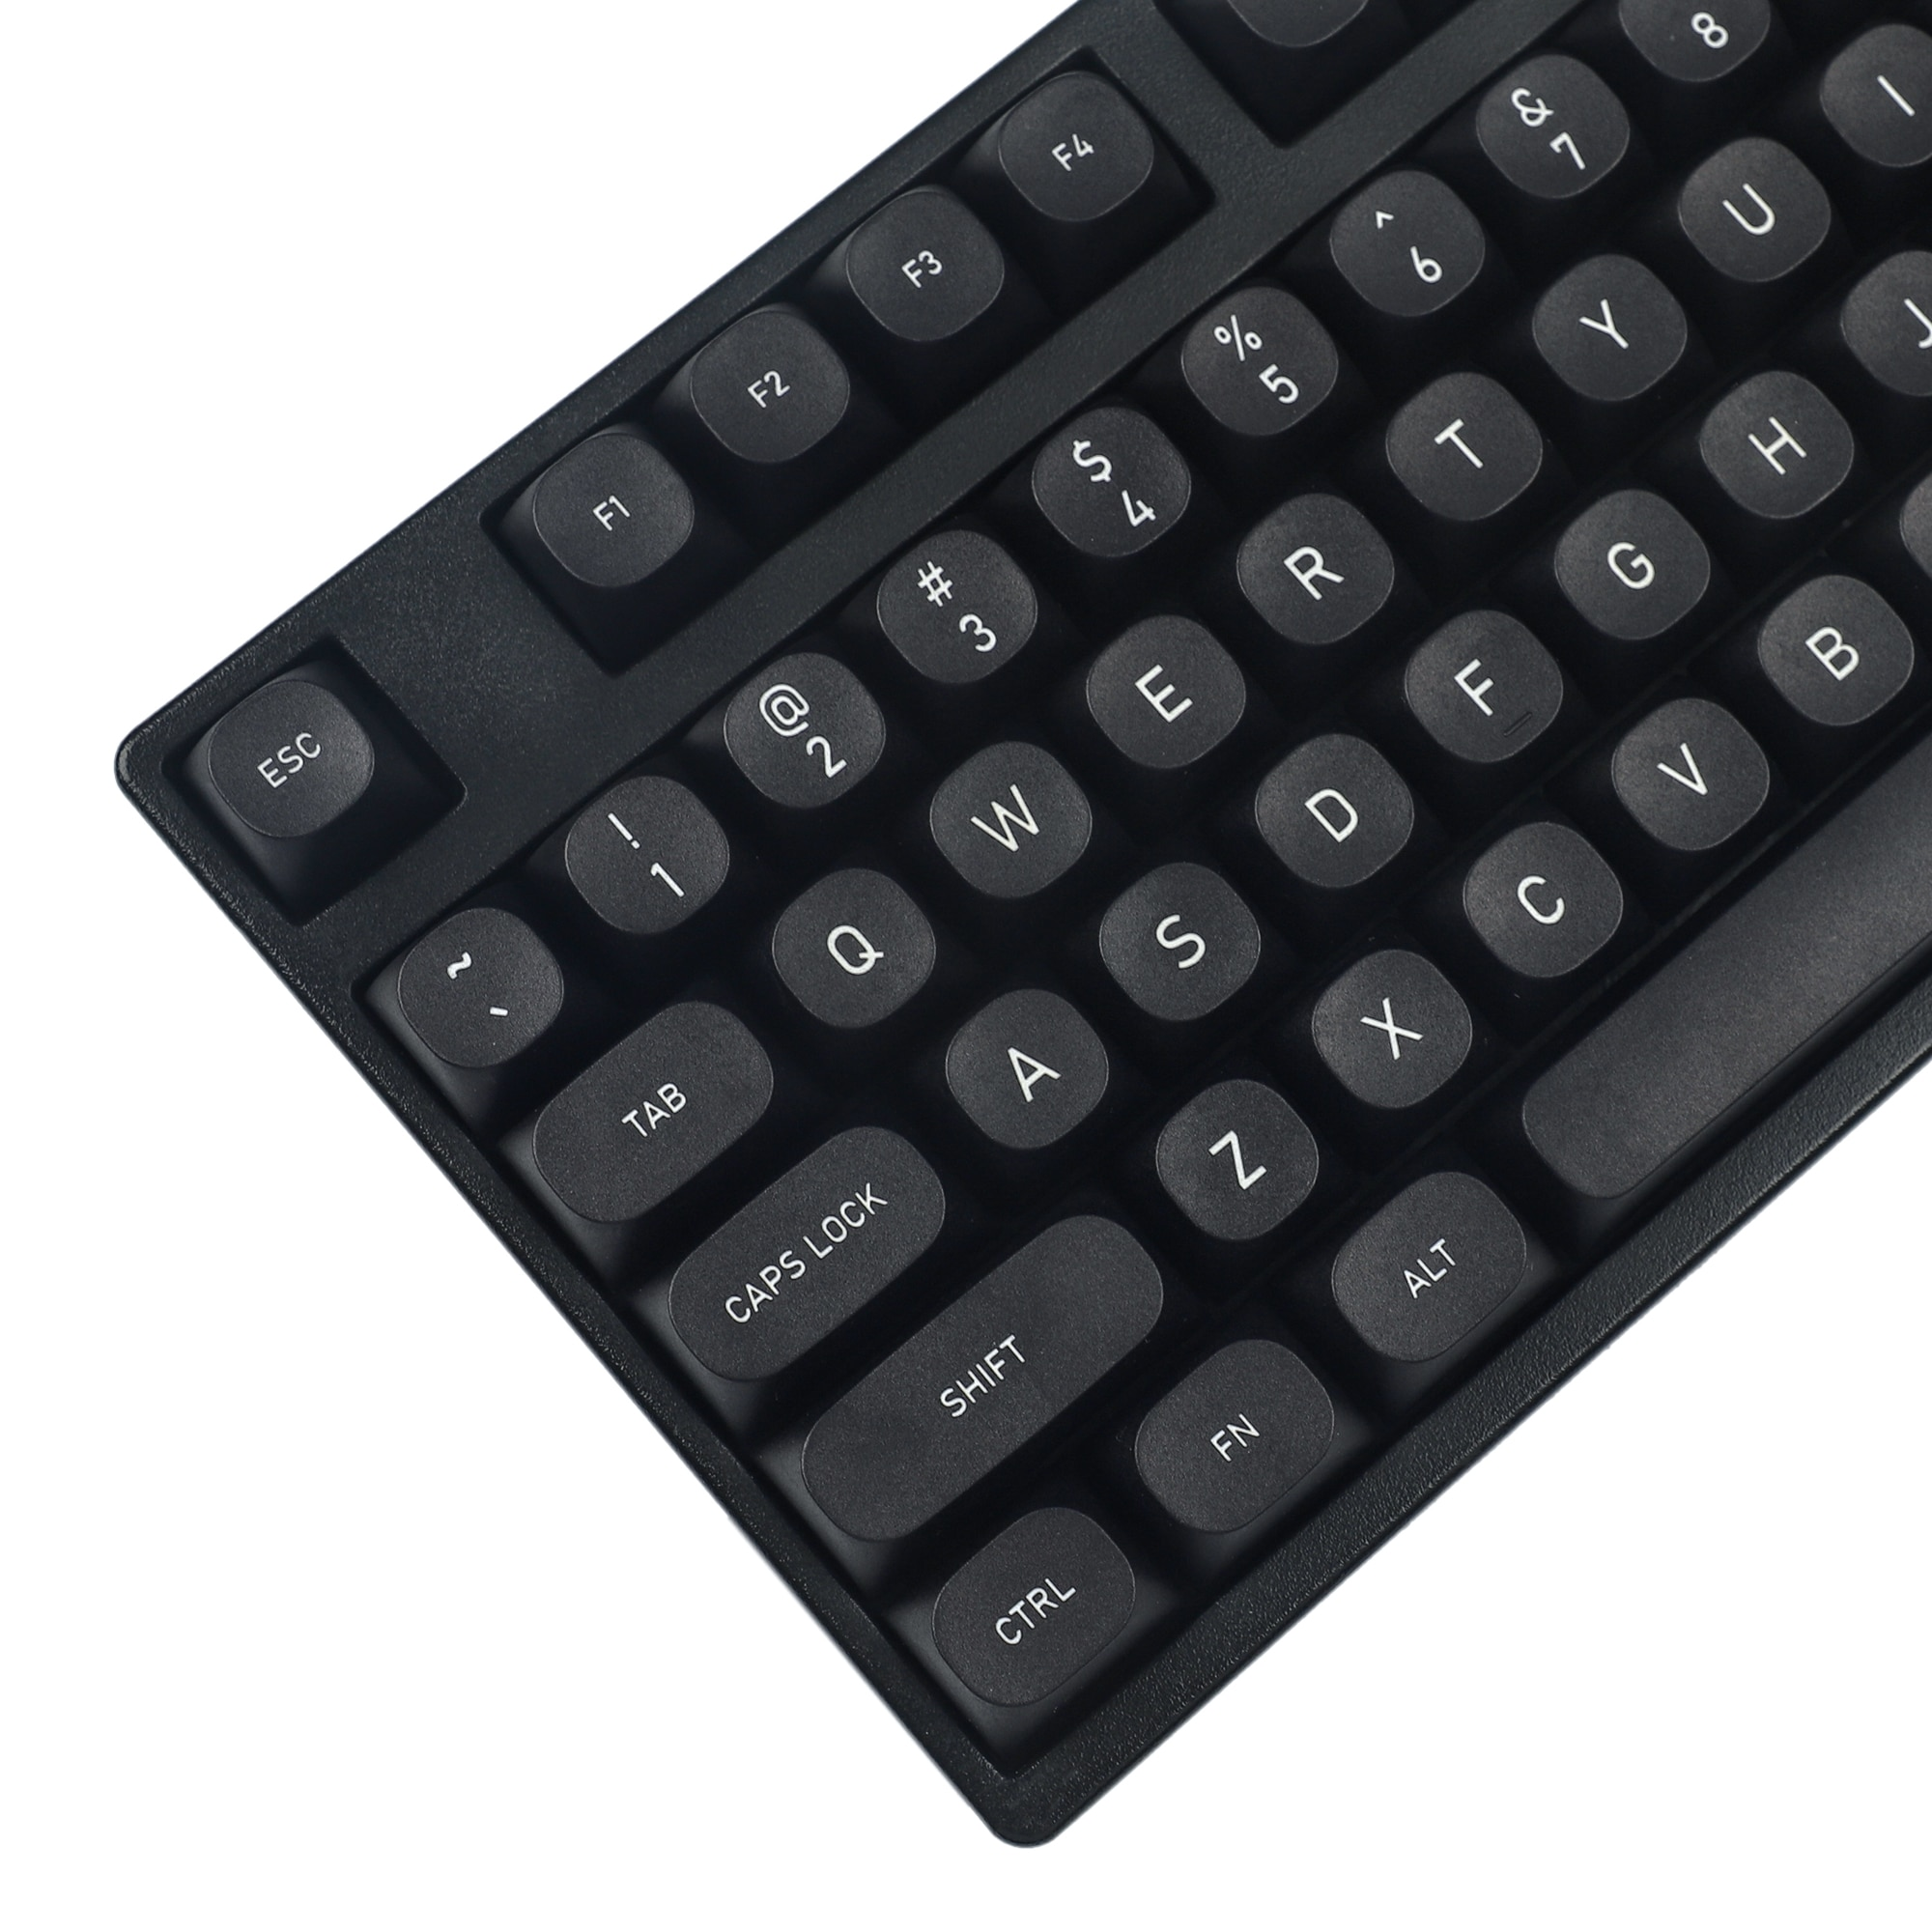 MA Black PBT Keycaps ANSI ISO CO2 Eteched For Mechanical Keyboard Filco Ducky 104 87 61 KBD75 YMD96 GK64 GK61 Keychron